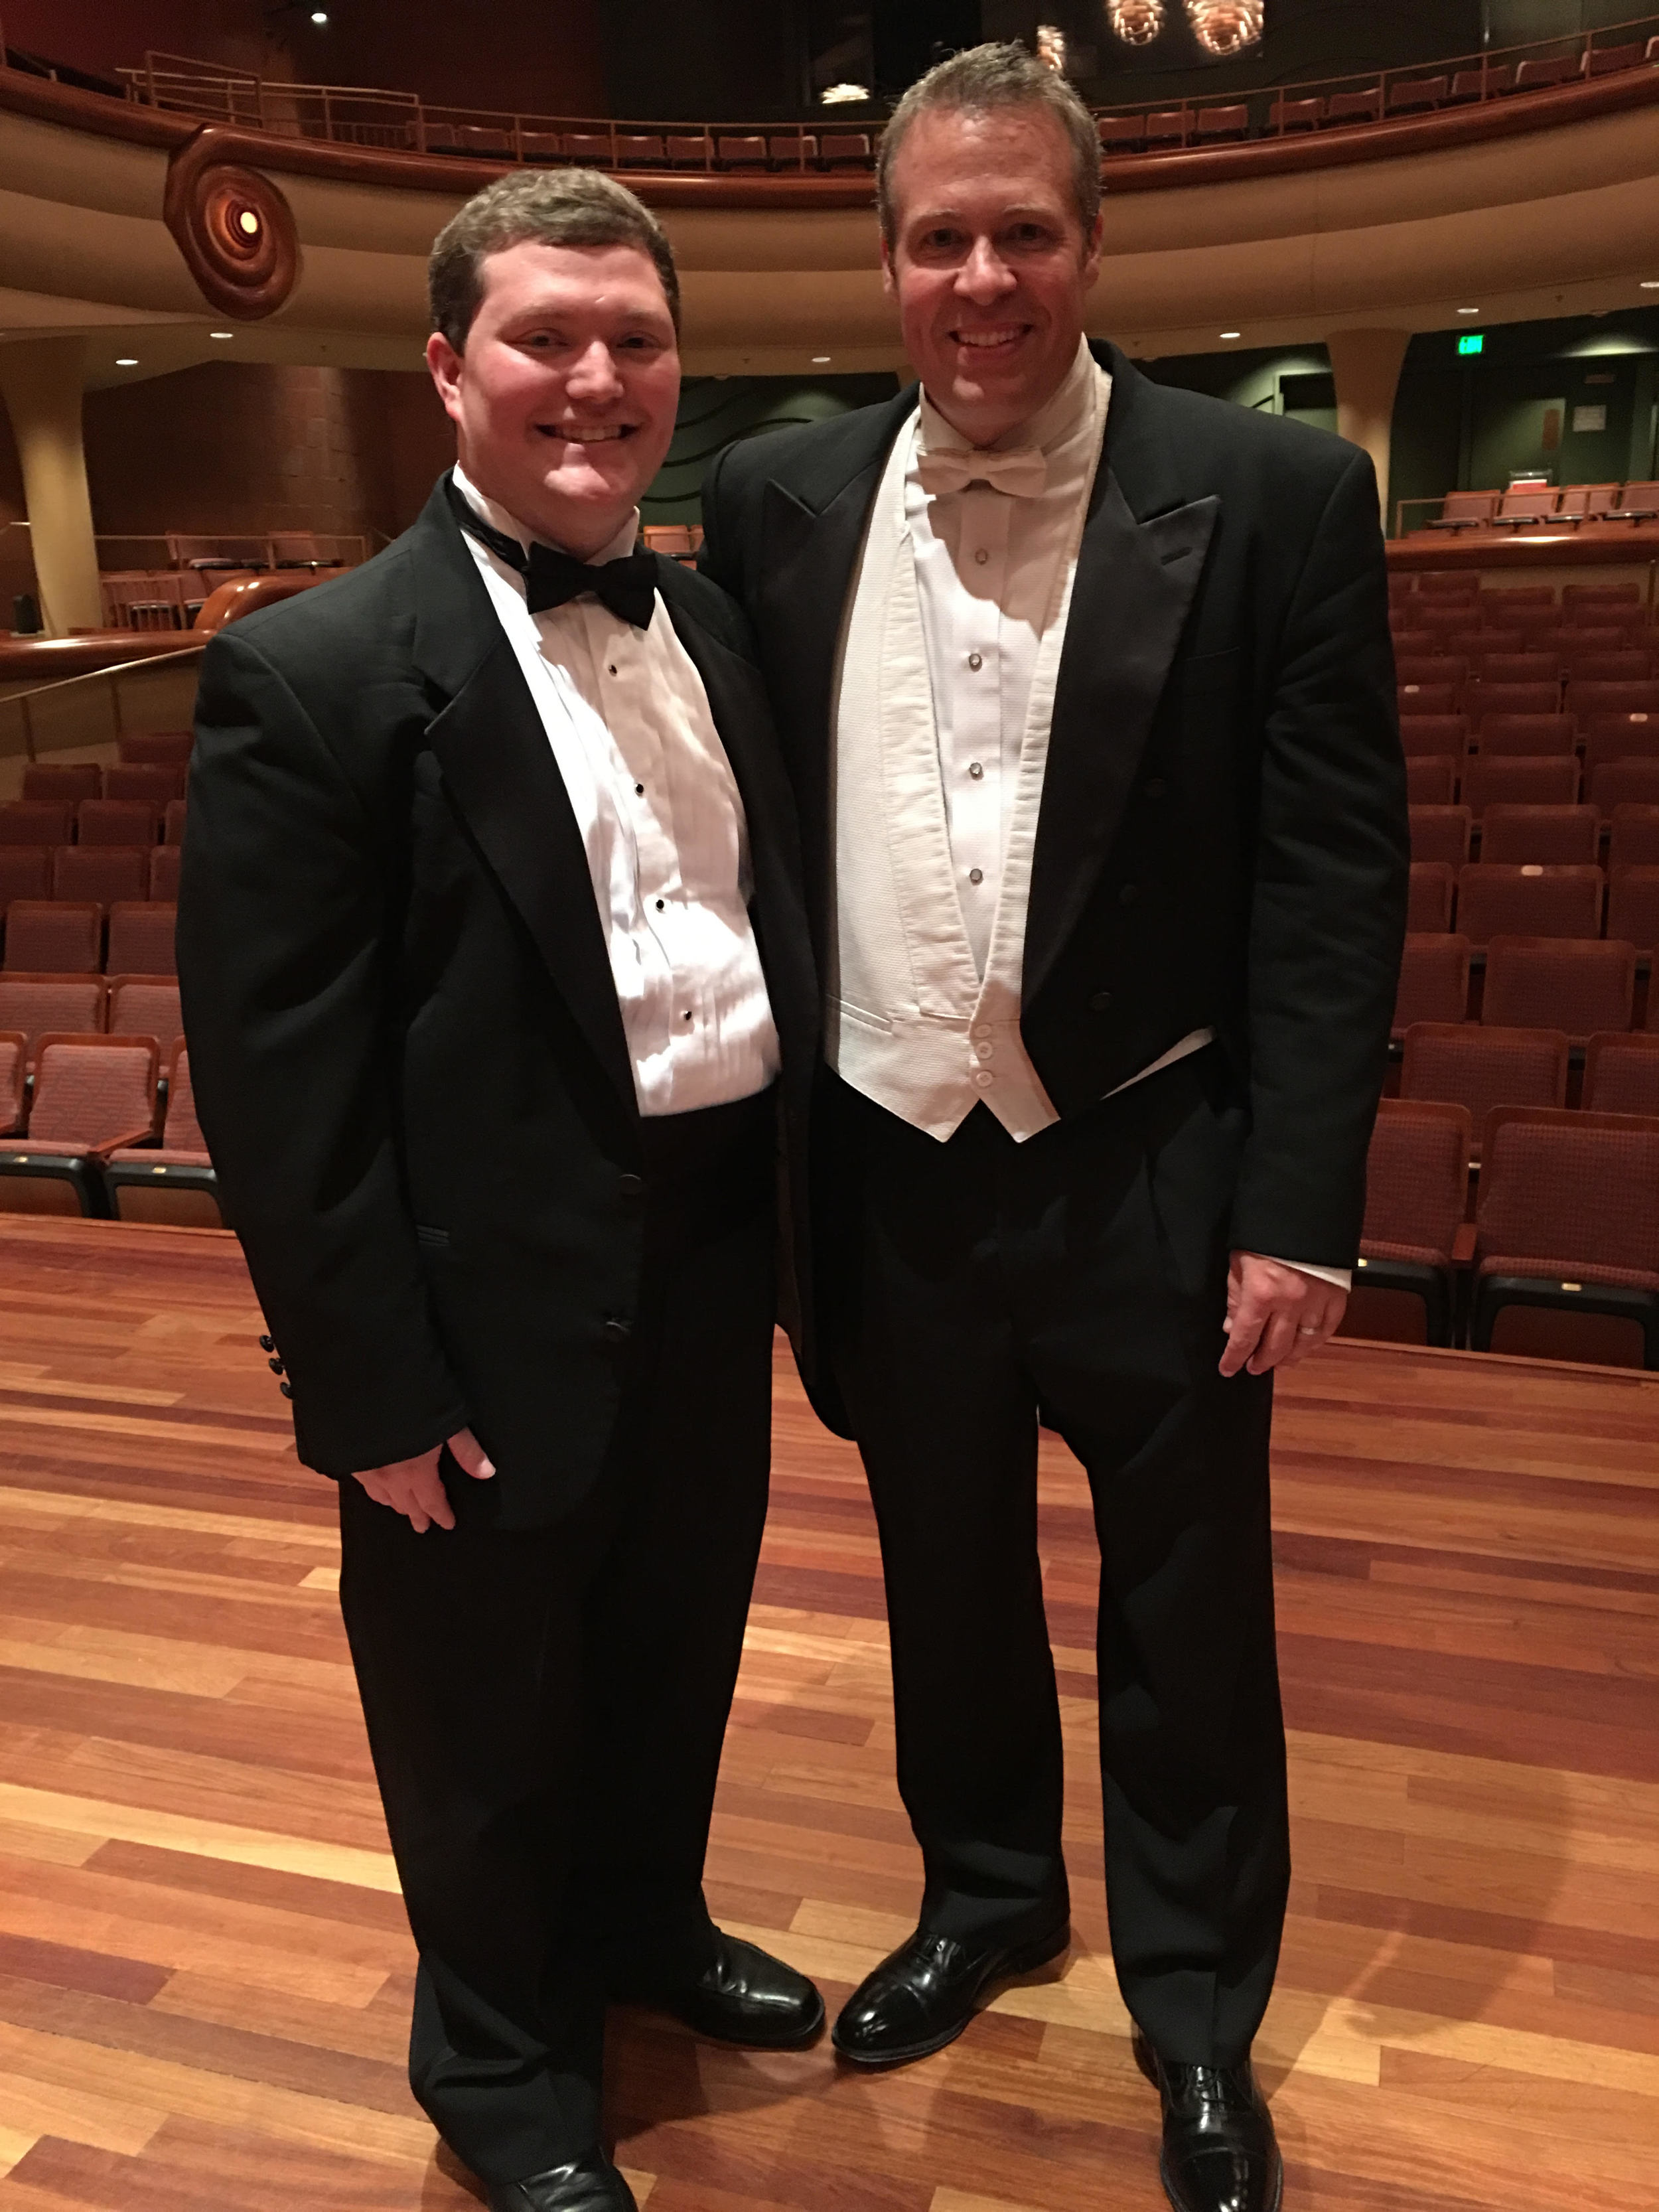 Brandon with Dr. Jamie Nix (Director of Wind Ensemble Activities at Columbus State University)